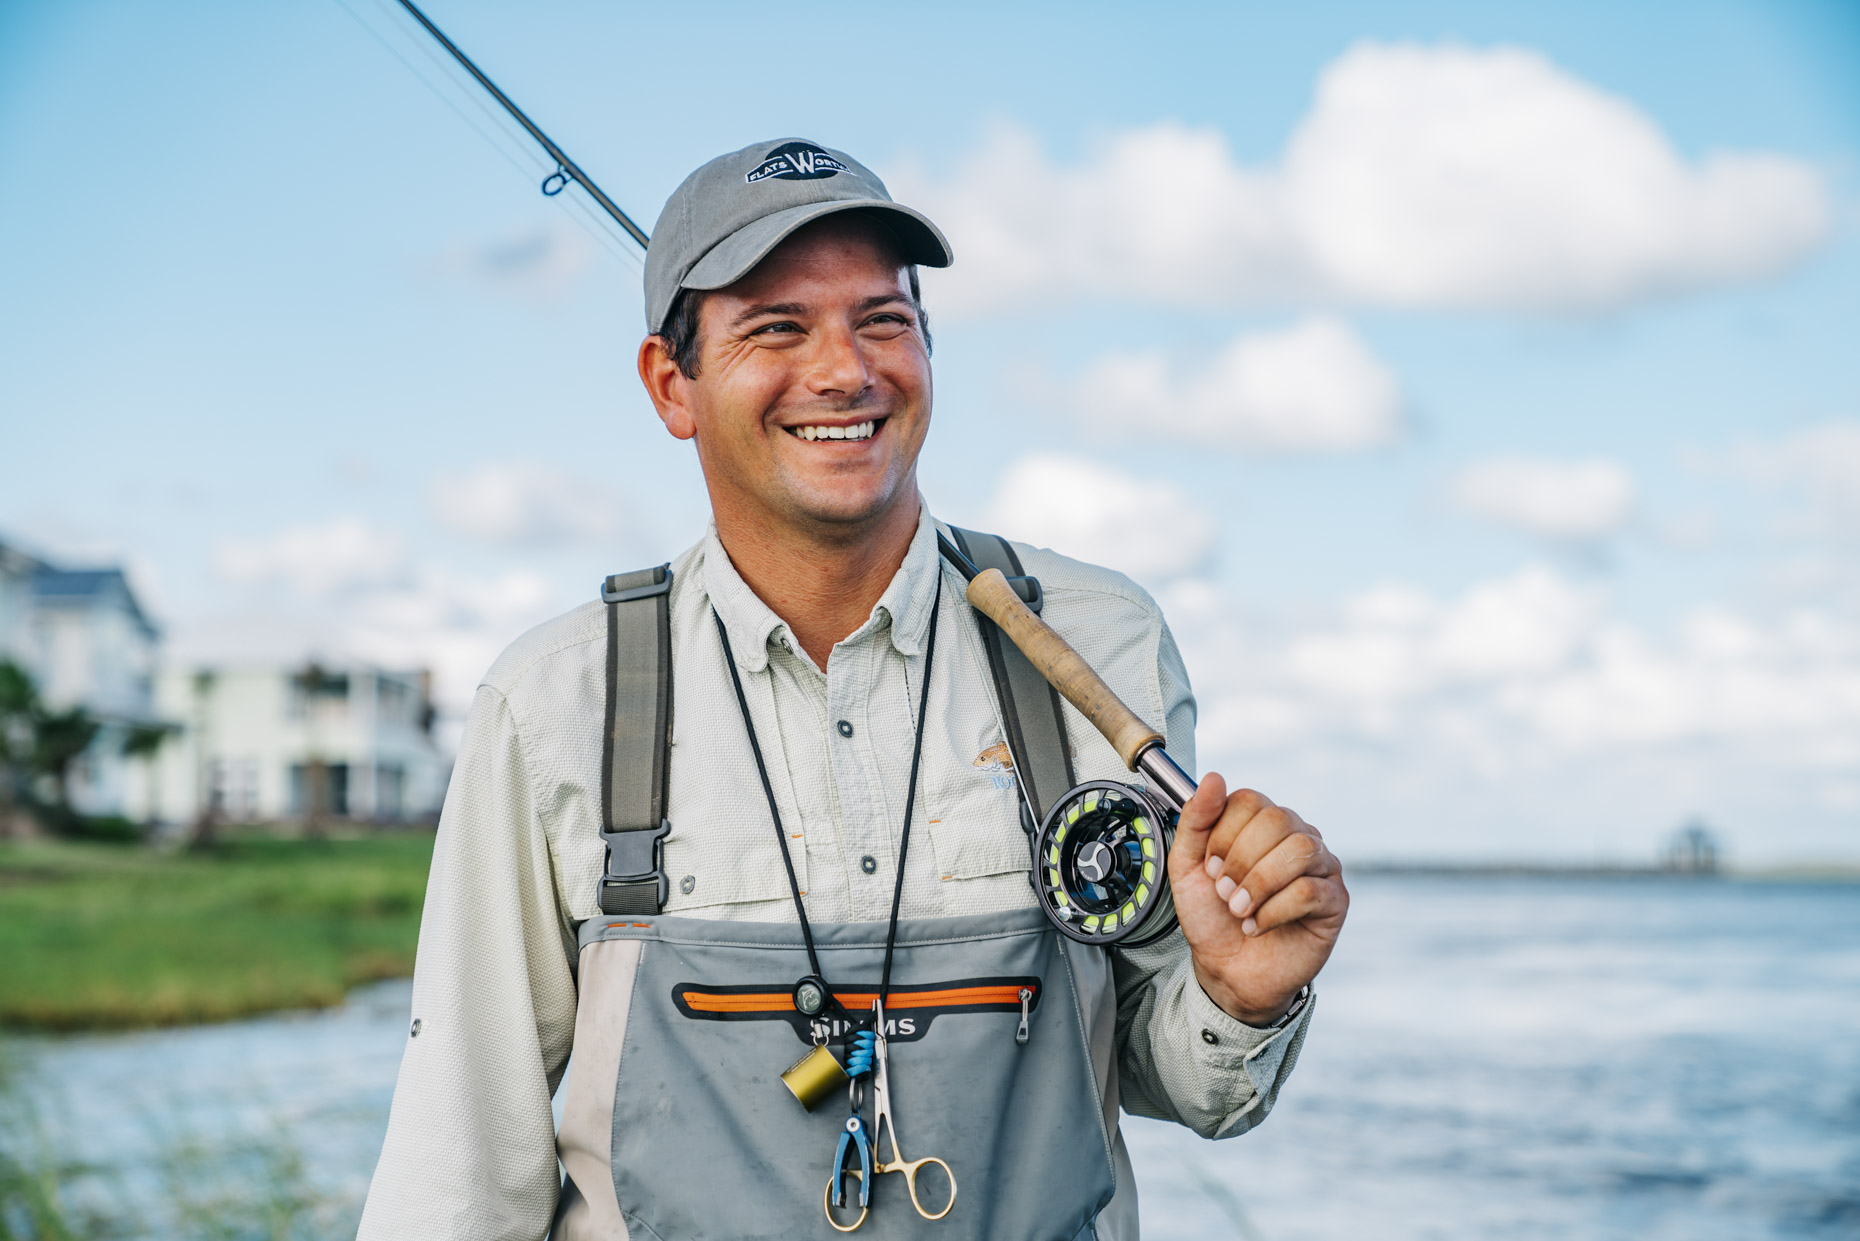 Smiling man in fly fishing gear